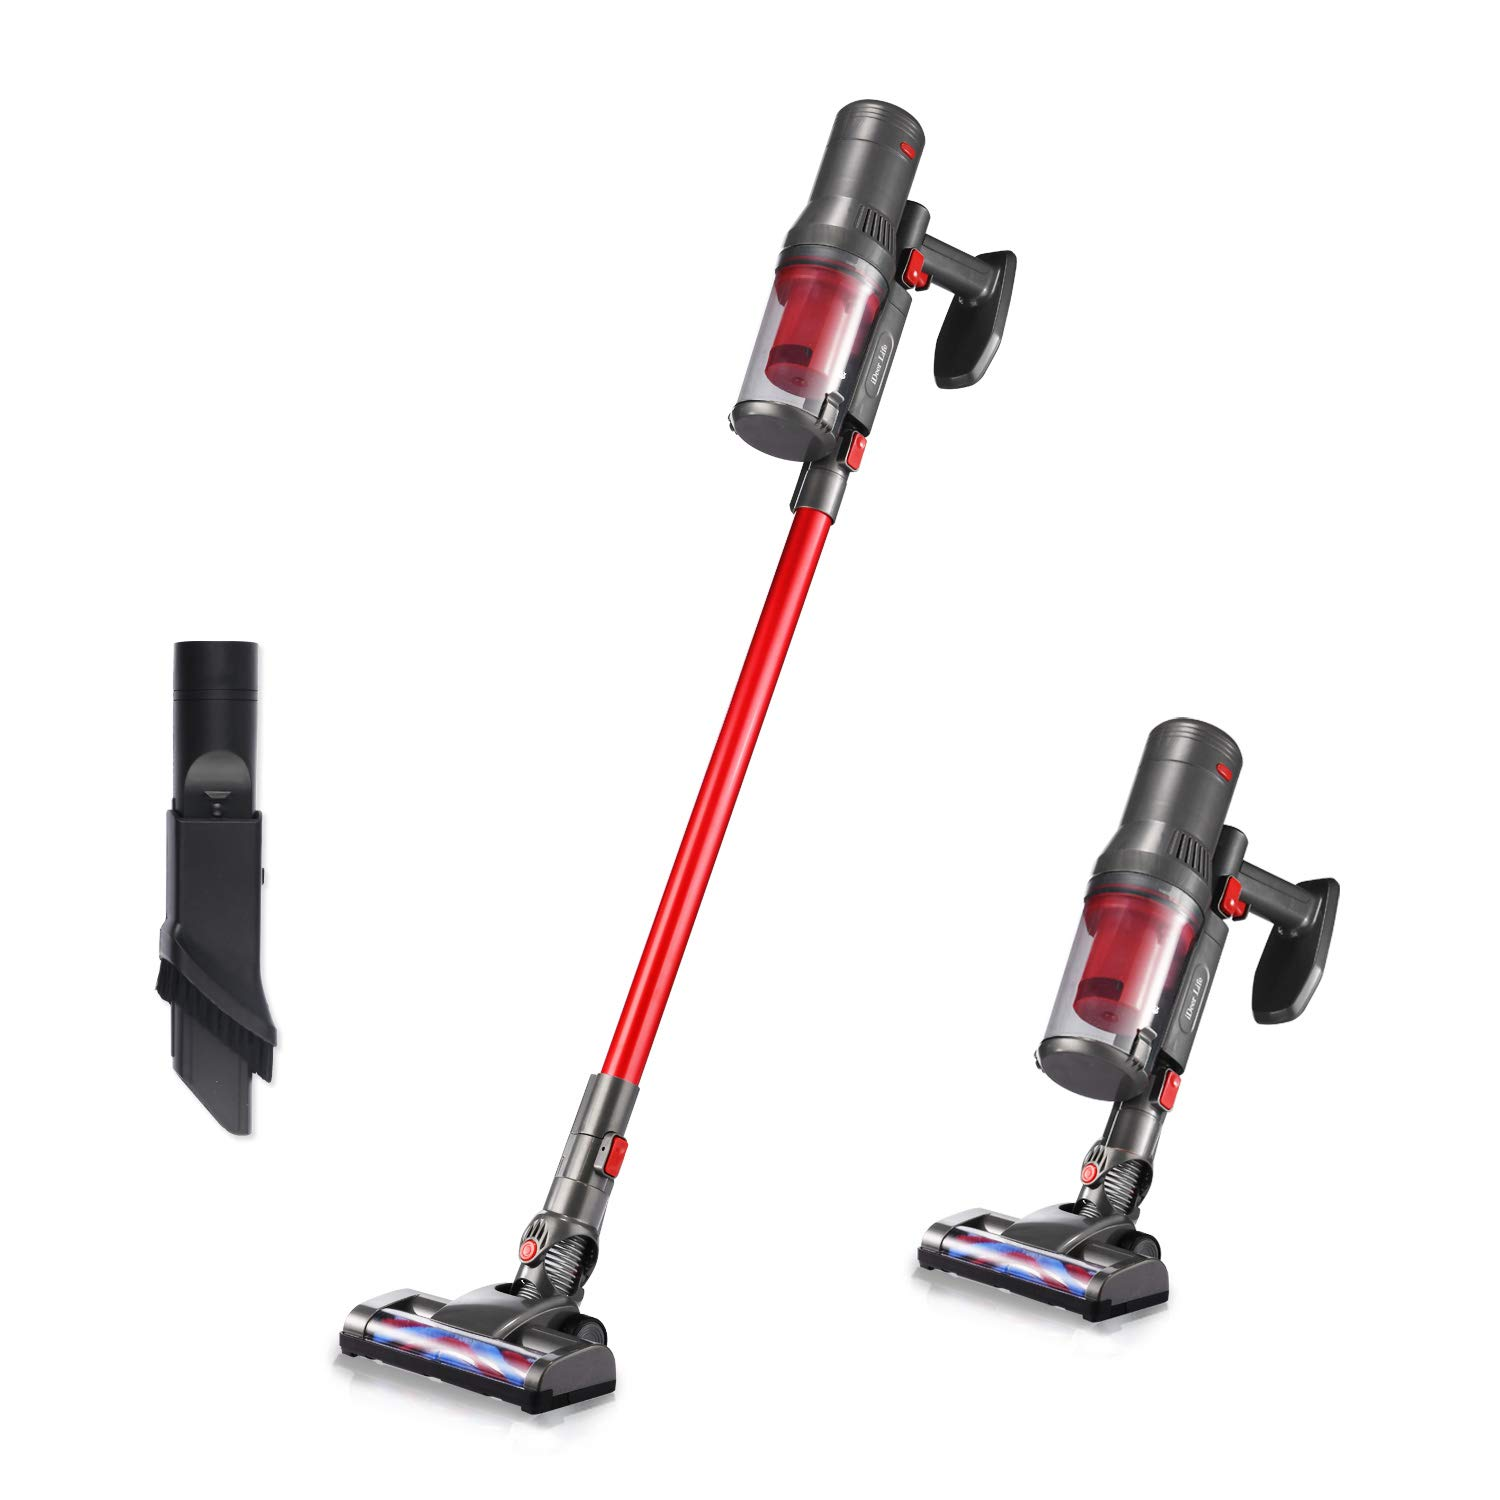 Cordless Vacuum Cleaner, IDEE Life Powerful 10KPa Cordless Stick Vacuums & Electric Broom,4 in 1 Rechargeable Handheld HEPA Vacuum Cleaner with Multiple Brush for Home/Car Cleaning,Lightweight (Red)